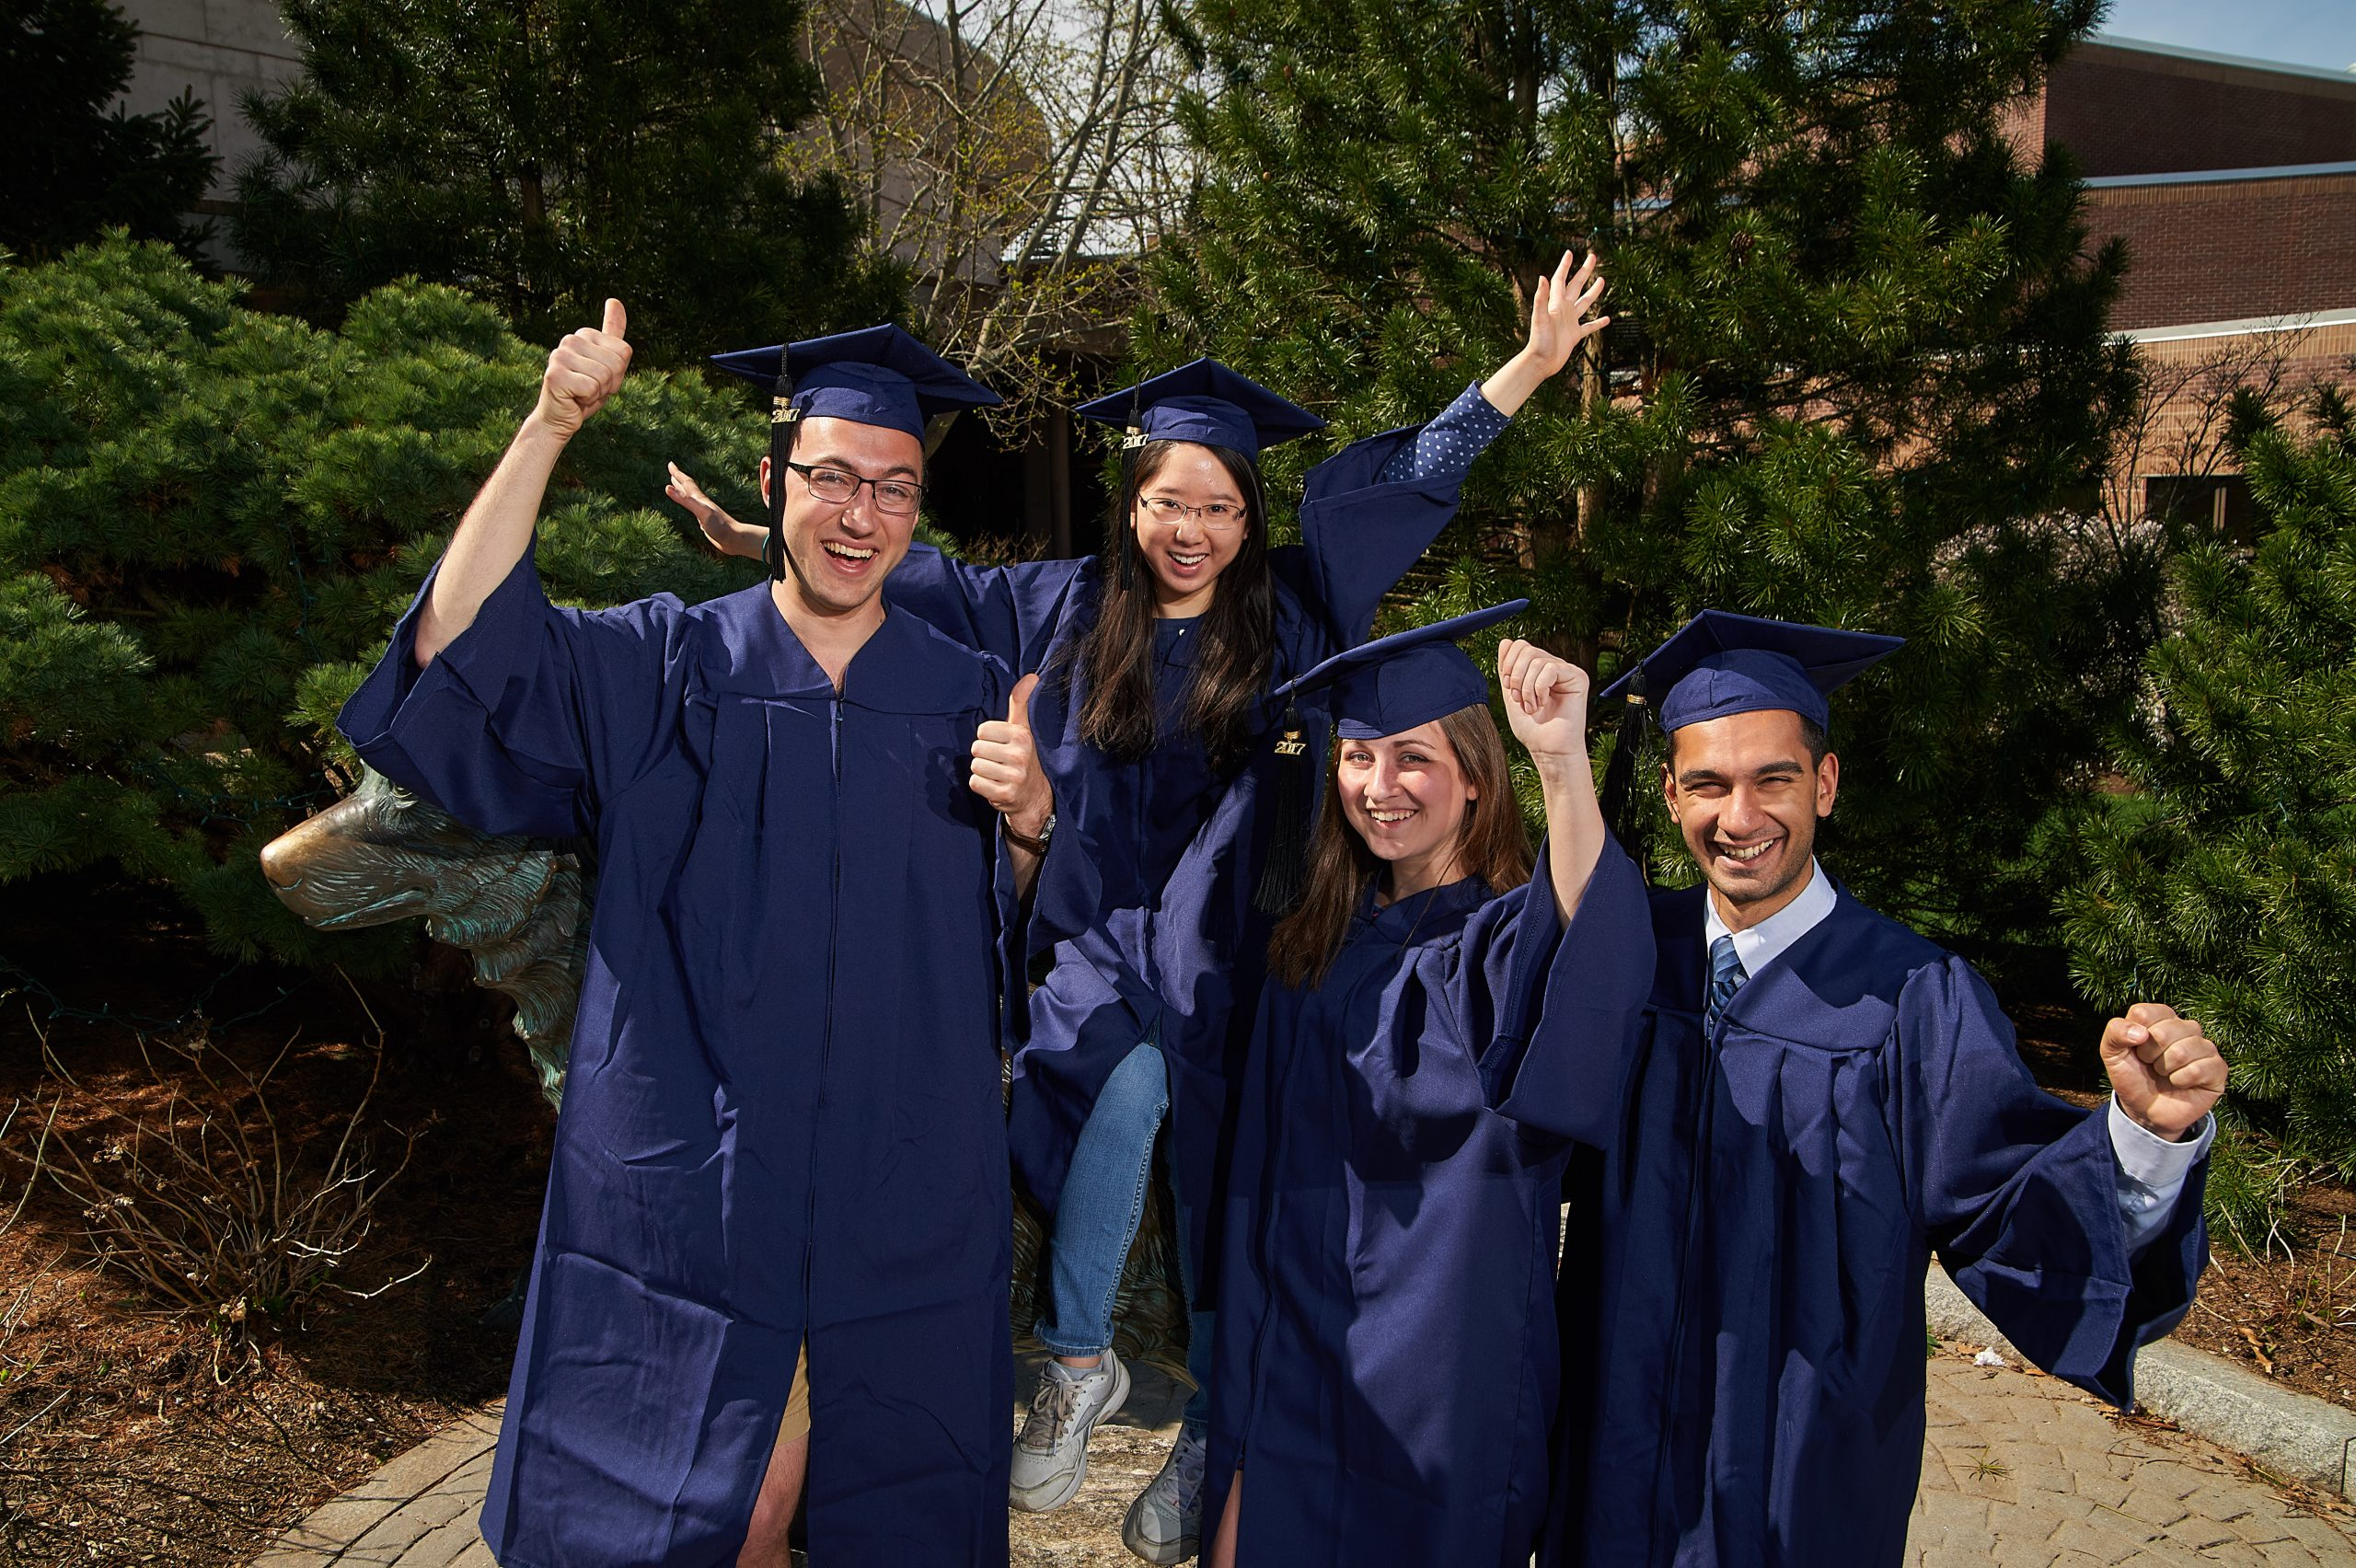 Students in Cap and Gowns together